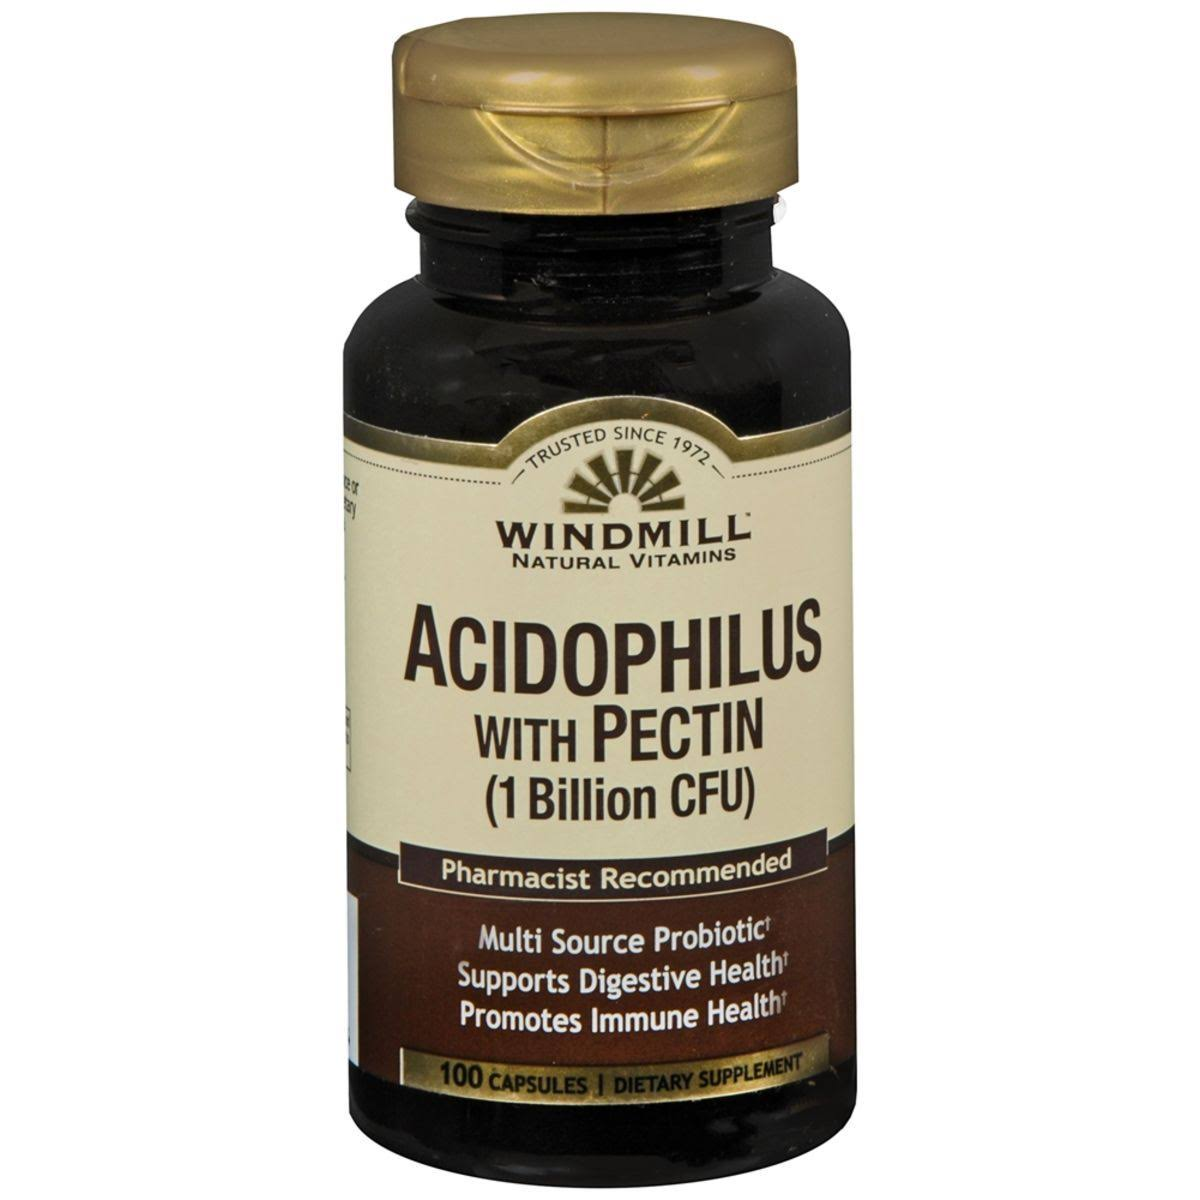 Windmill Acidophilus with Pectin (1 Billion CFU) 100 Caps